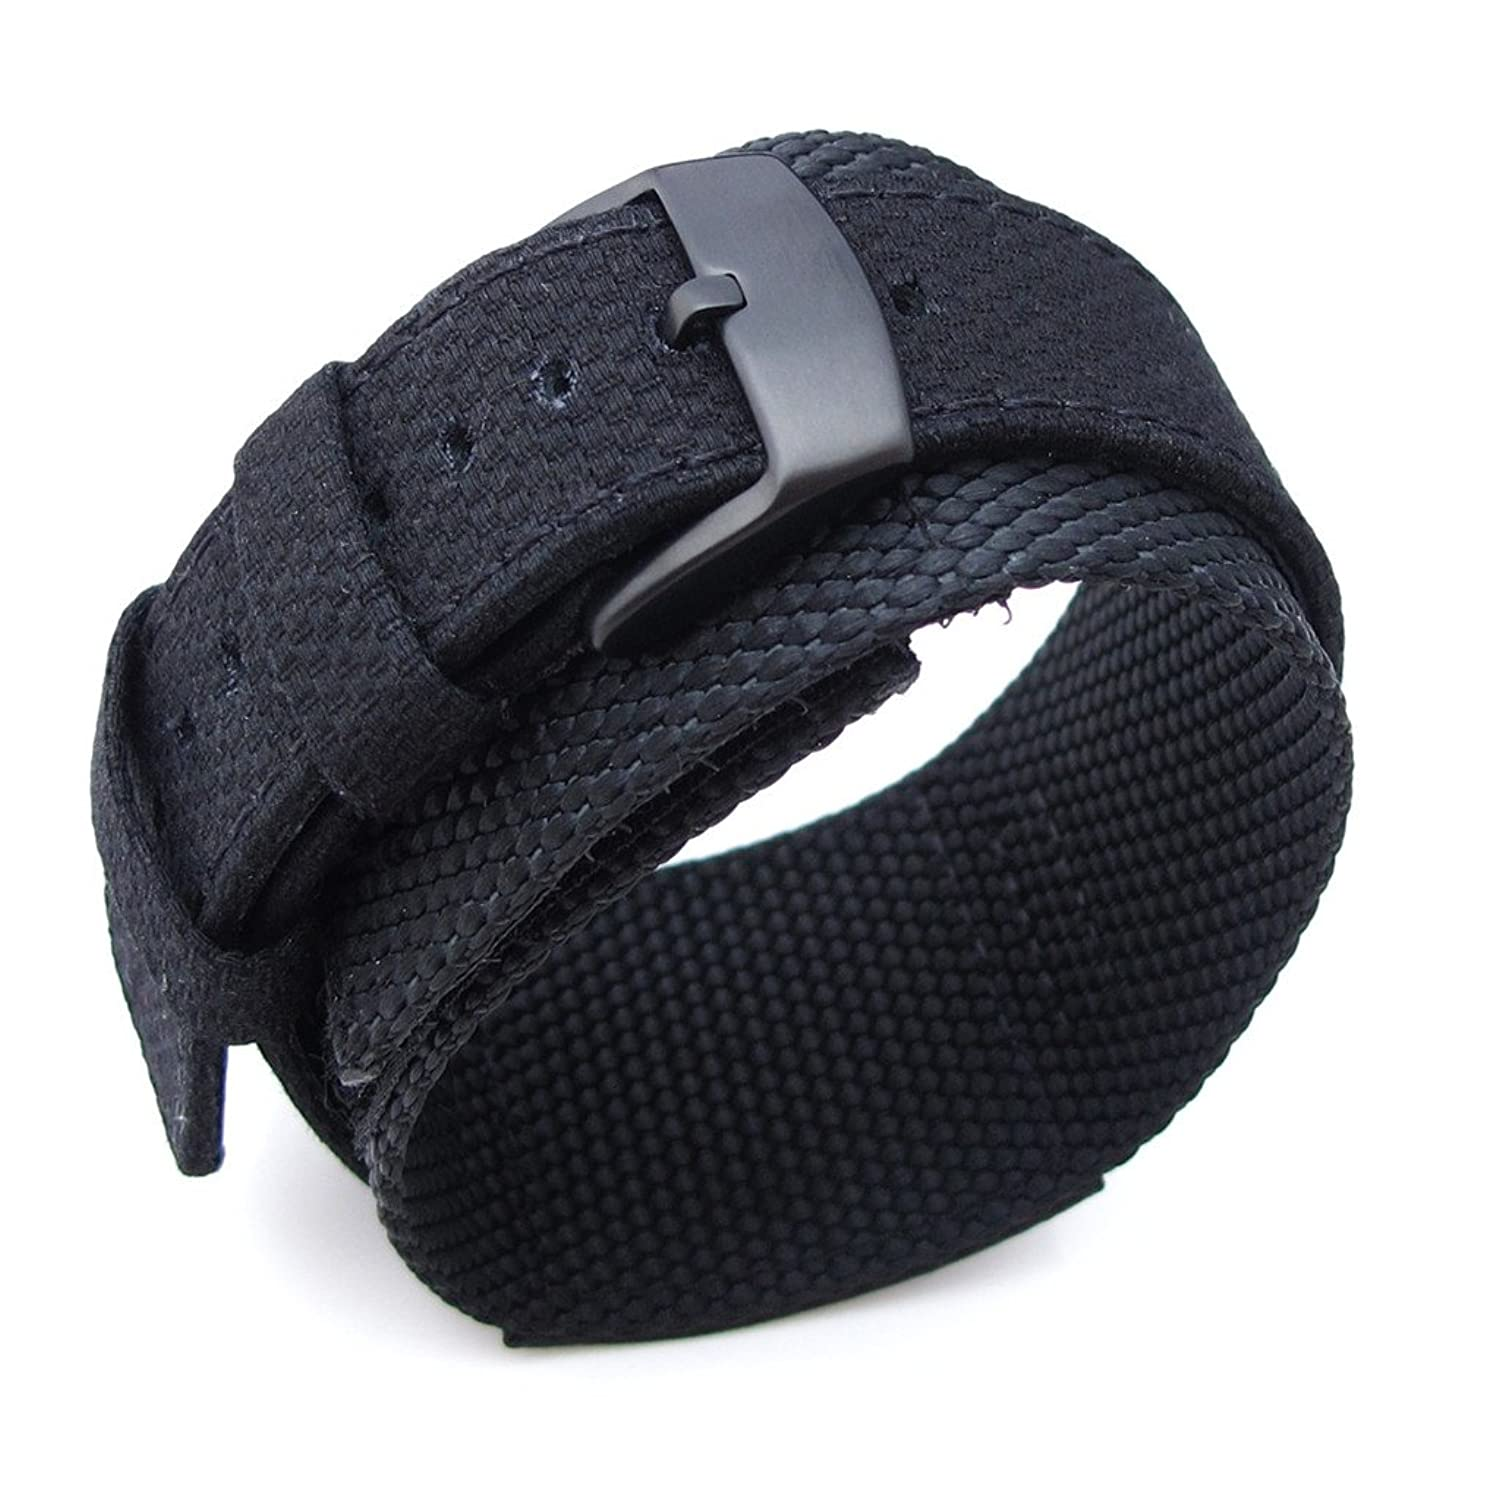 MiLTAT 20mm Double Layer Nylon Black Tactical Velcro Watch Strap, PVD Black Buckle excellent quality new 20mm military army nylon watch band straps waterproof watch strap black silver buckle 2 colors available